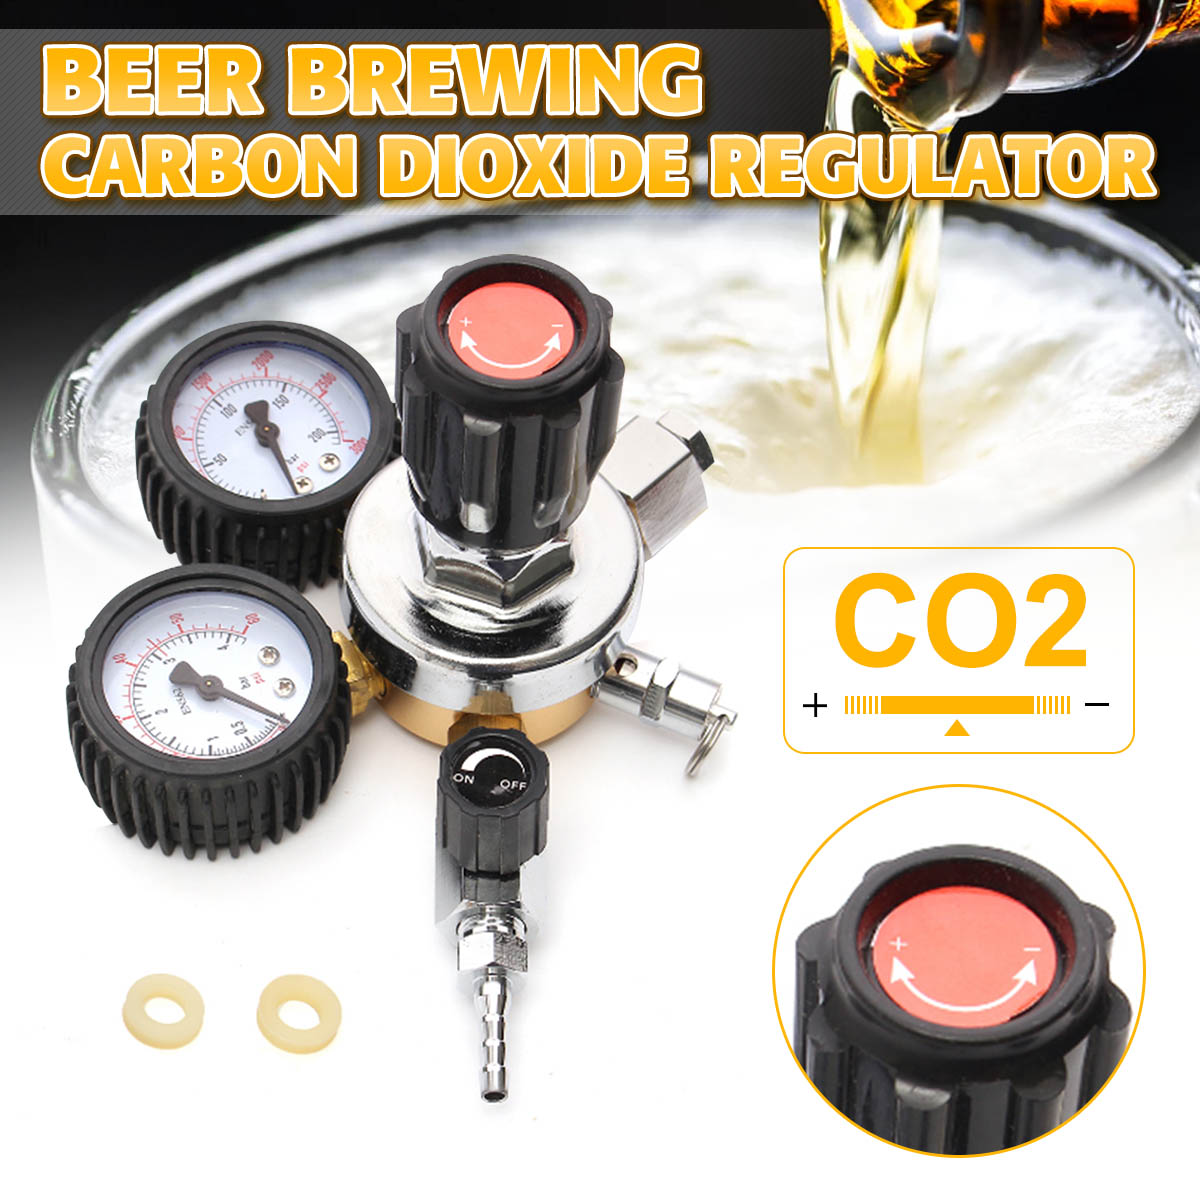 CO2 Gas Bottle Regulator Carbon Dioxide CO2 Regulators Pressure Reducer For Beverage Beer W21.8 Double Gauge Regulator